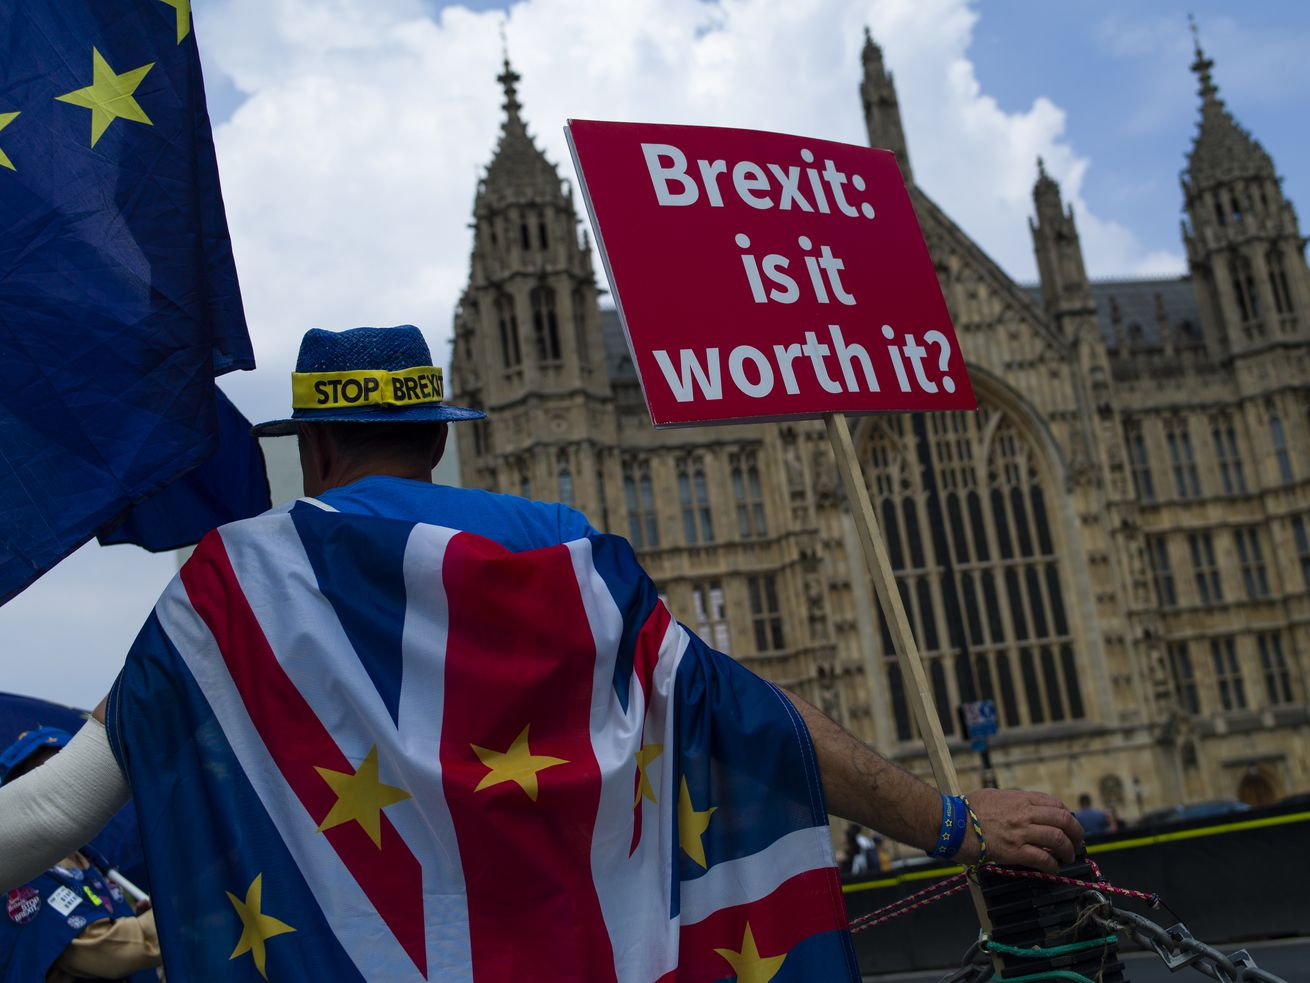 A man protests against Brexit outside the Houses of Parliament on July 5, 2018, in London, England.